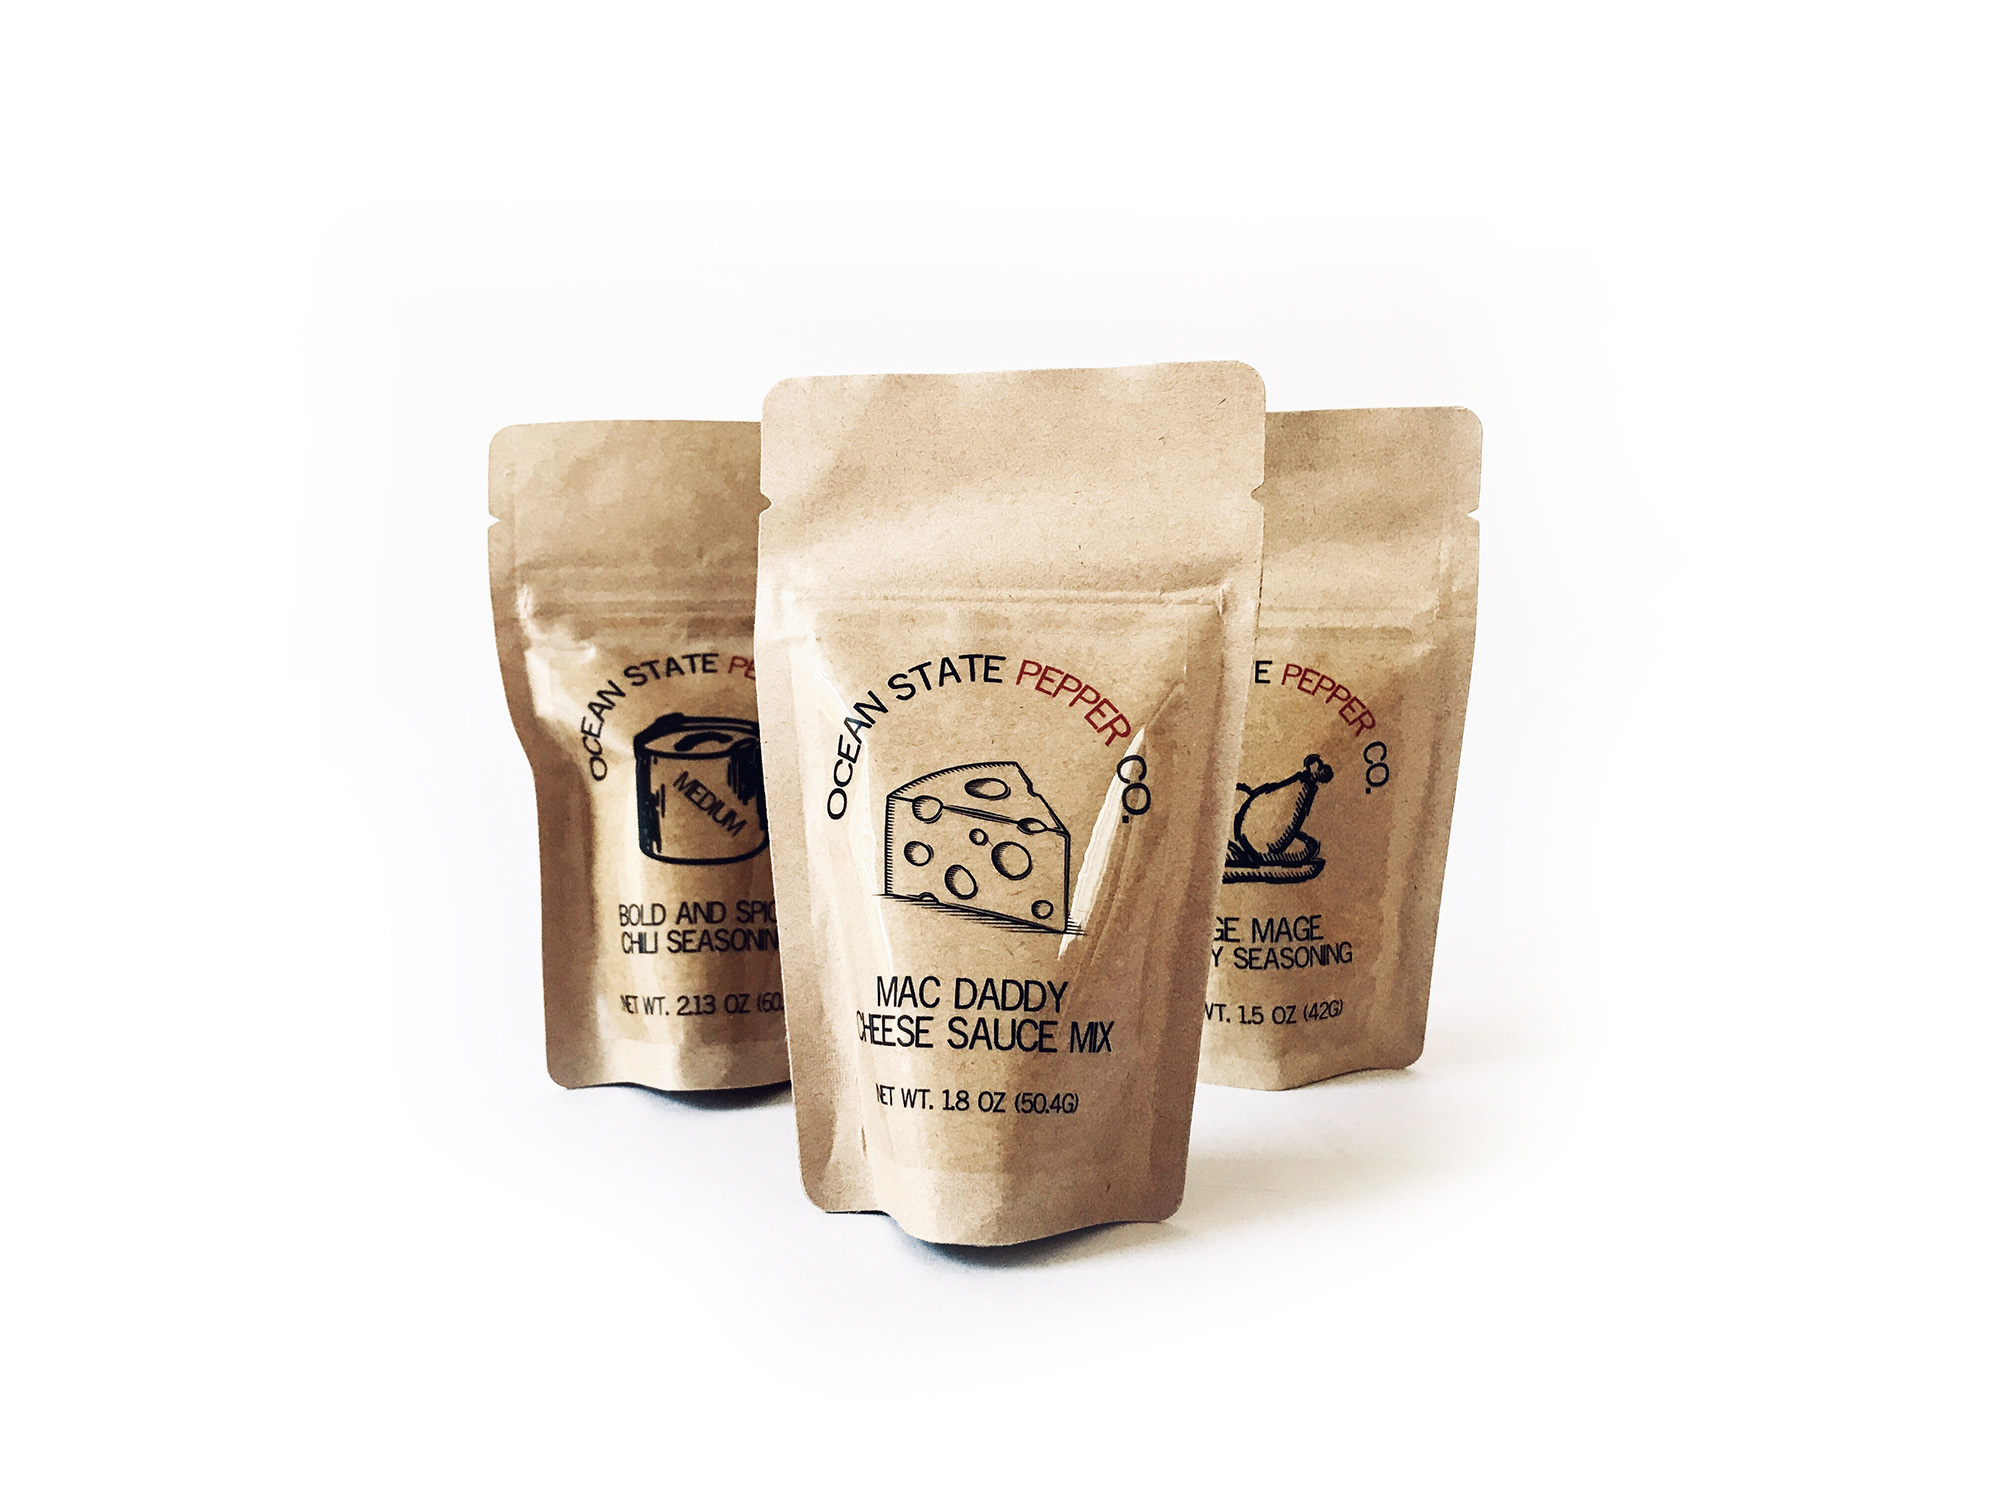 Ocean State Pepper Co. Pouches-1